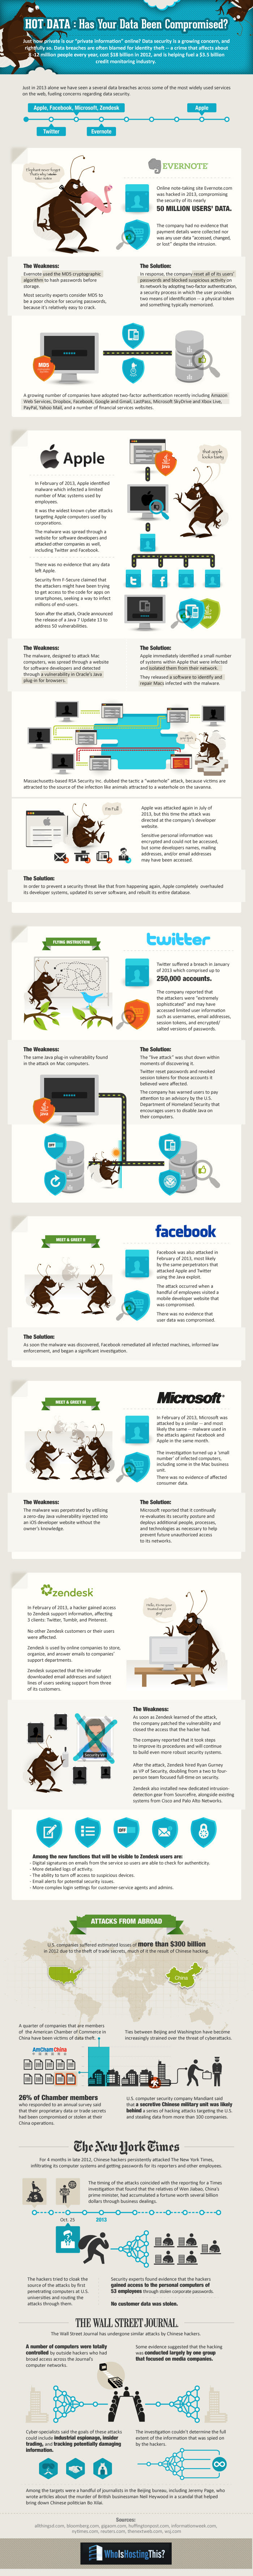 Has Your Data Been Compromised -The Biggest Security Breaches of 2013 [INFOGRAPHIC]